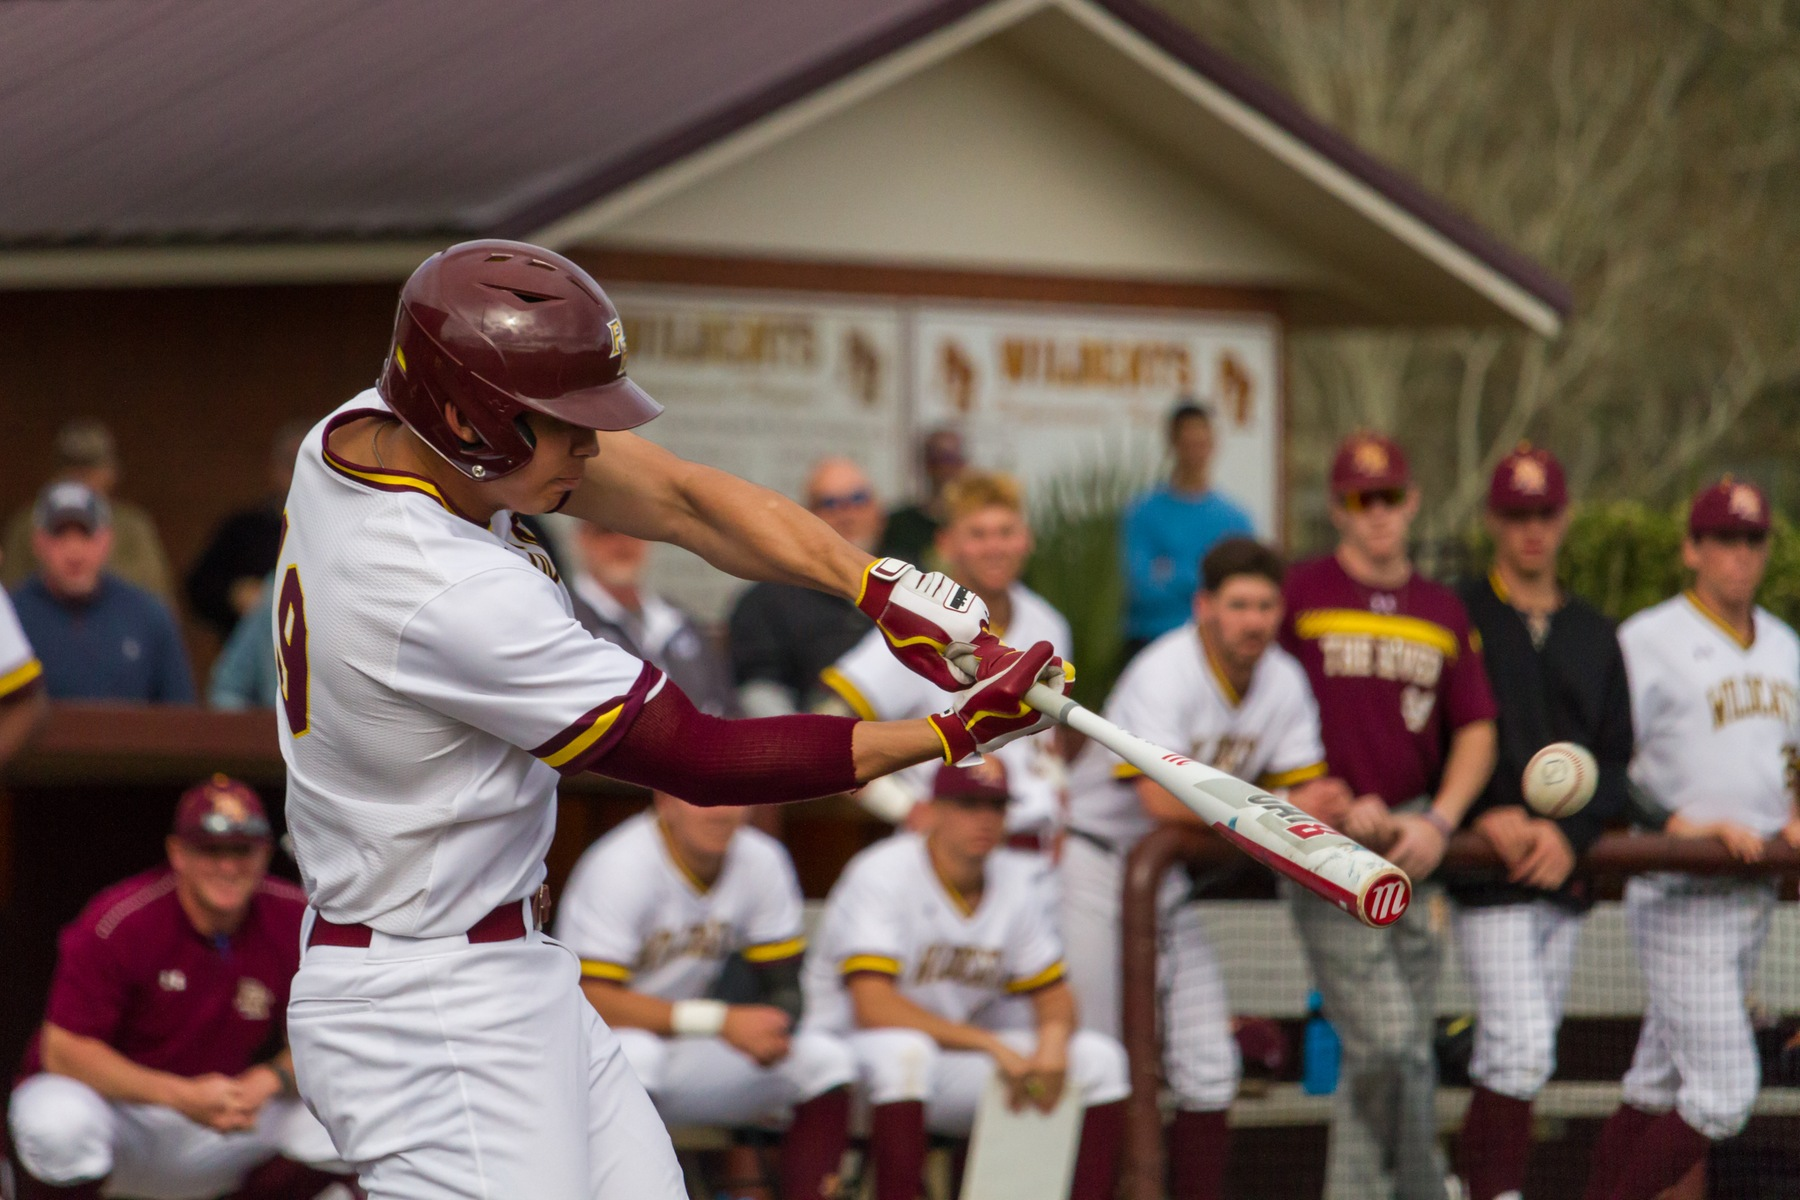 No. 8 Pearl River opened the 2019 season at the newly renovated Dub Herring Park in Poplarville, Miss., on Sunday, Feb. 10, 2019, against Jefferson College. The Wildcats and Vikings split the doubleheader, with JC winning 5-3 in 13 innings and then PRCC won 5-4 in a walk-off in Game 2. (BRETT RUSS/PRCC ATHLETICS)